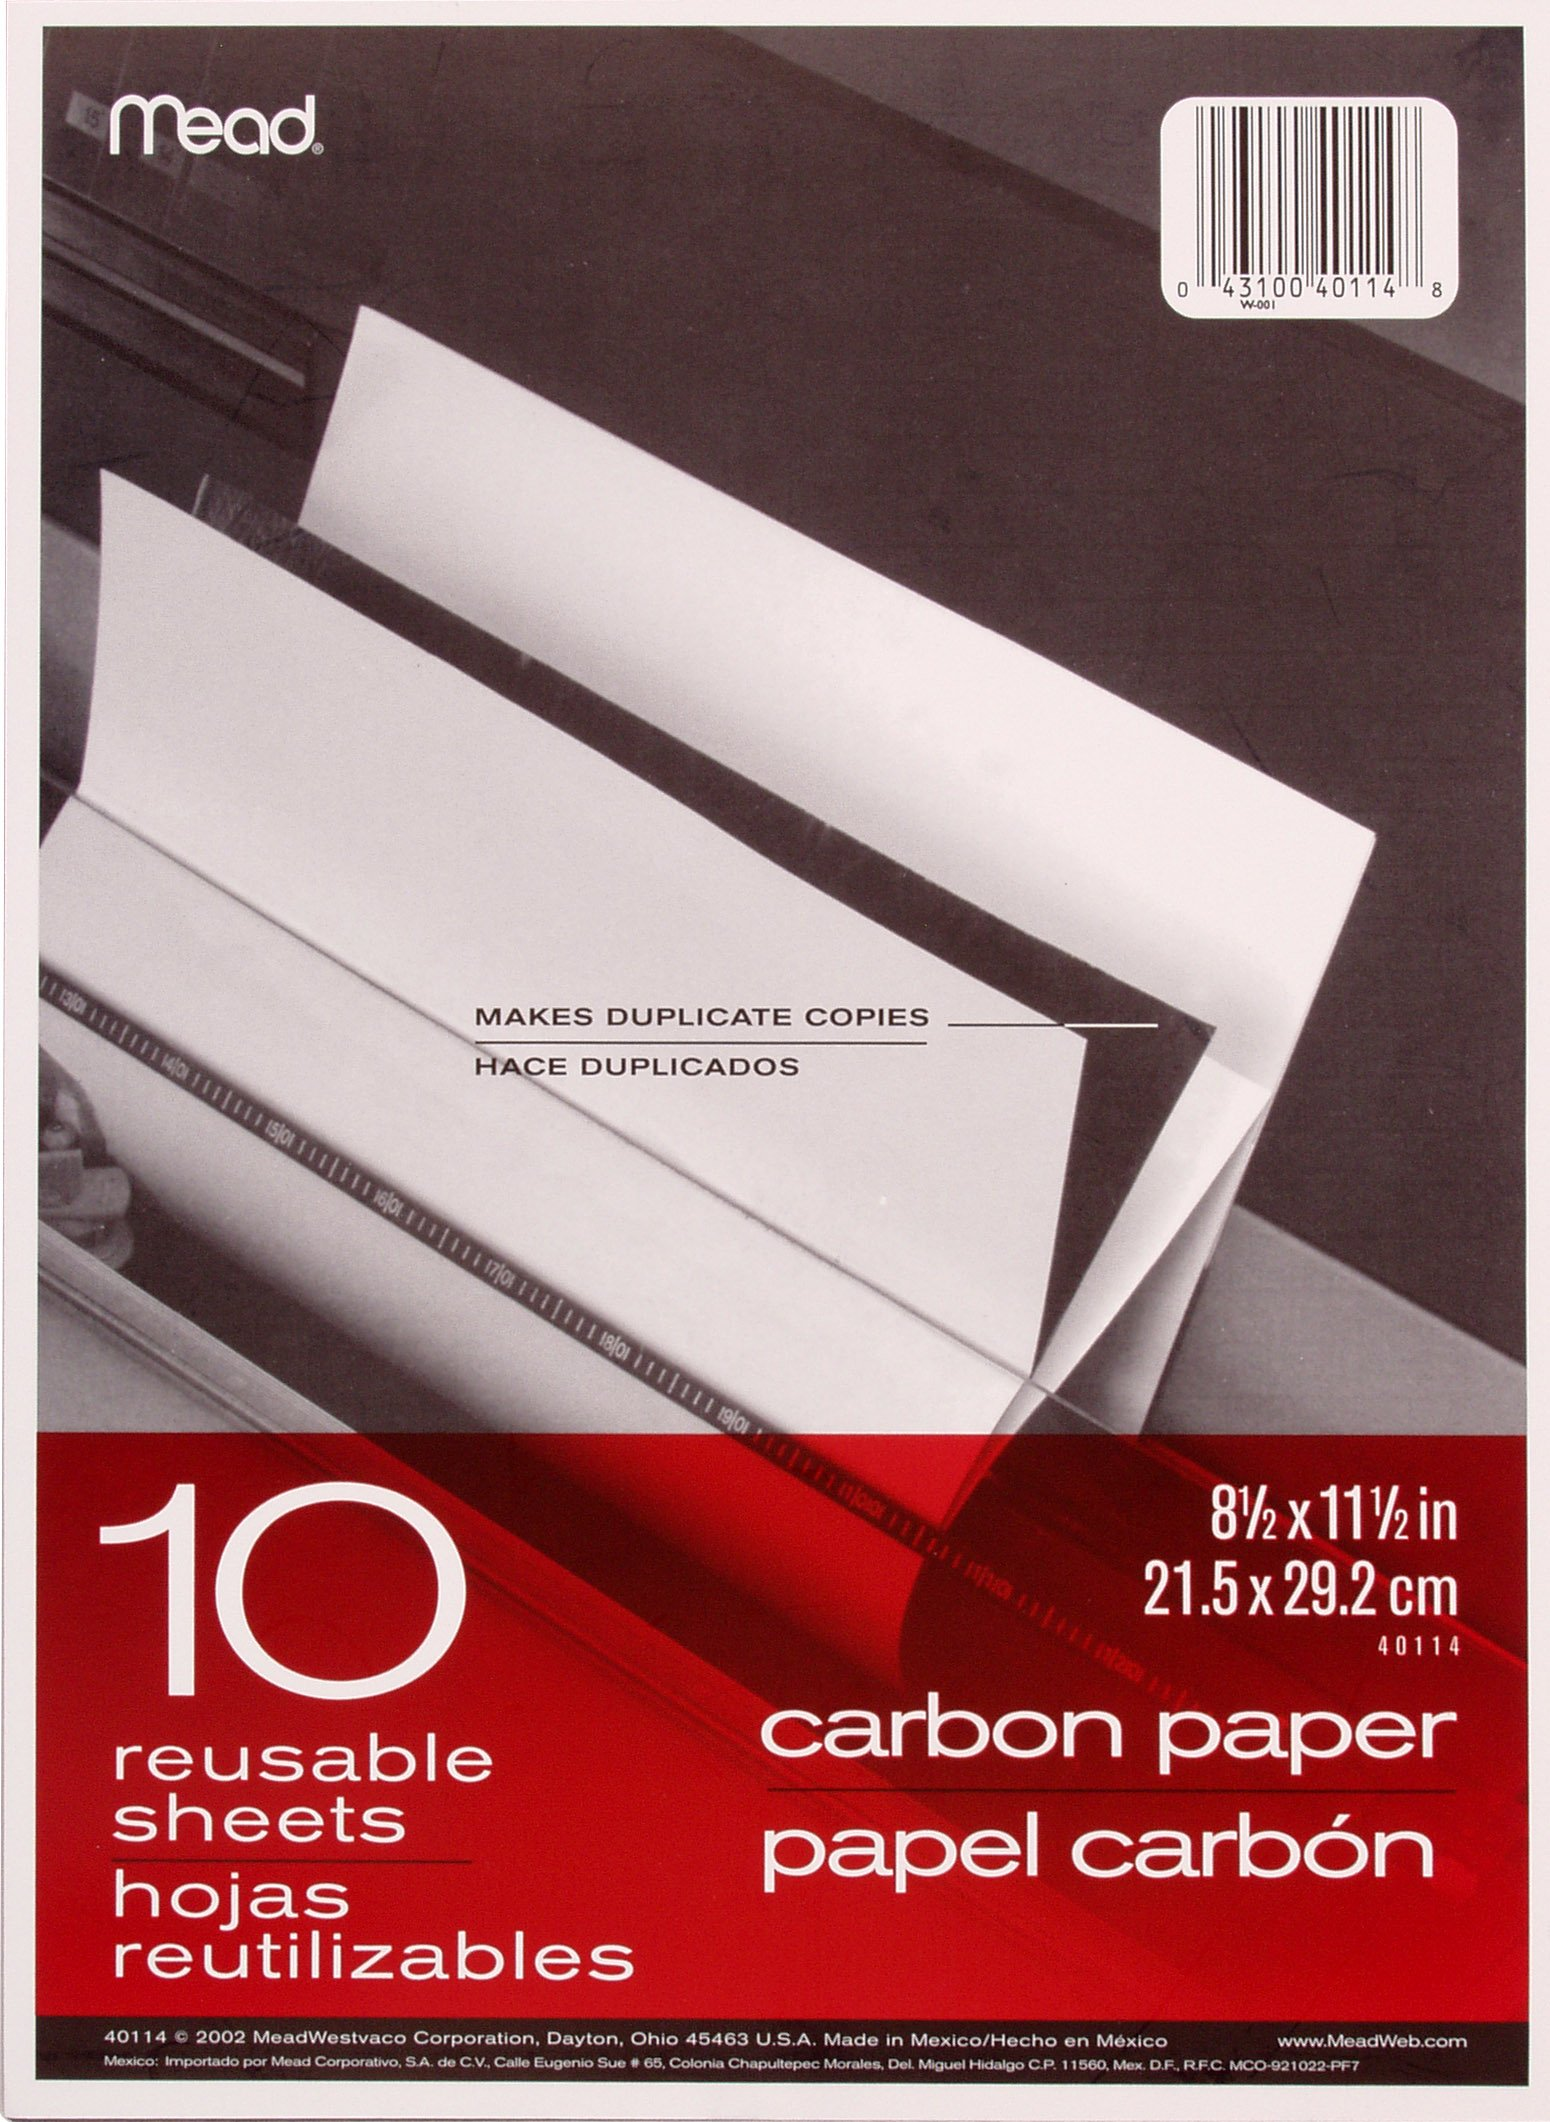 Mead Carbon Paper, 11.5 x 8.5 Inches, Set of 12 Folders (10 Sheets per Folder) (40001) by Mead